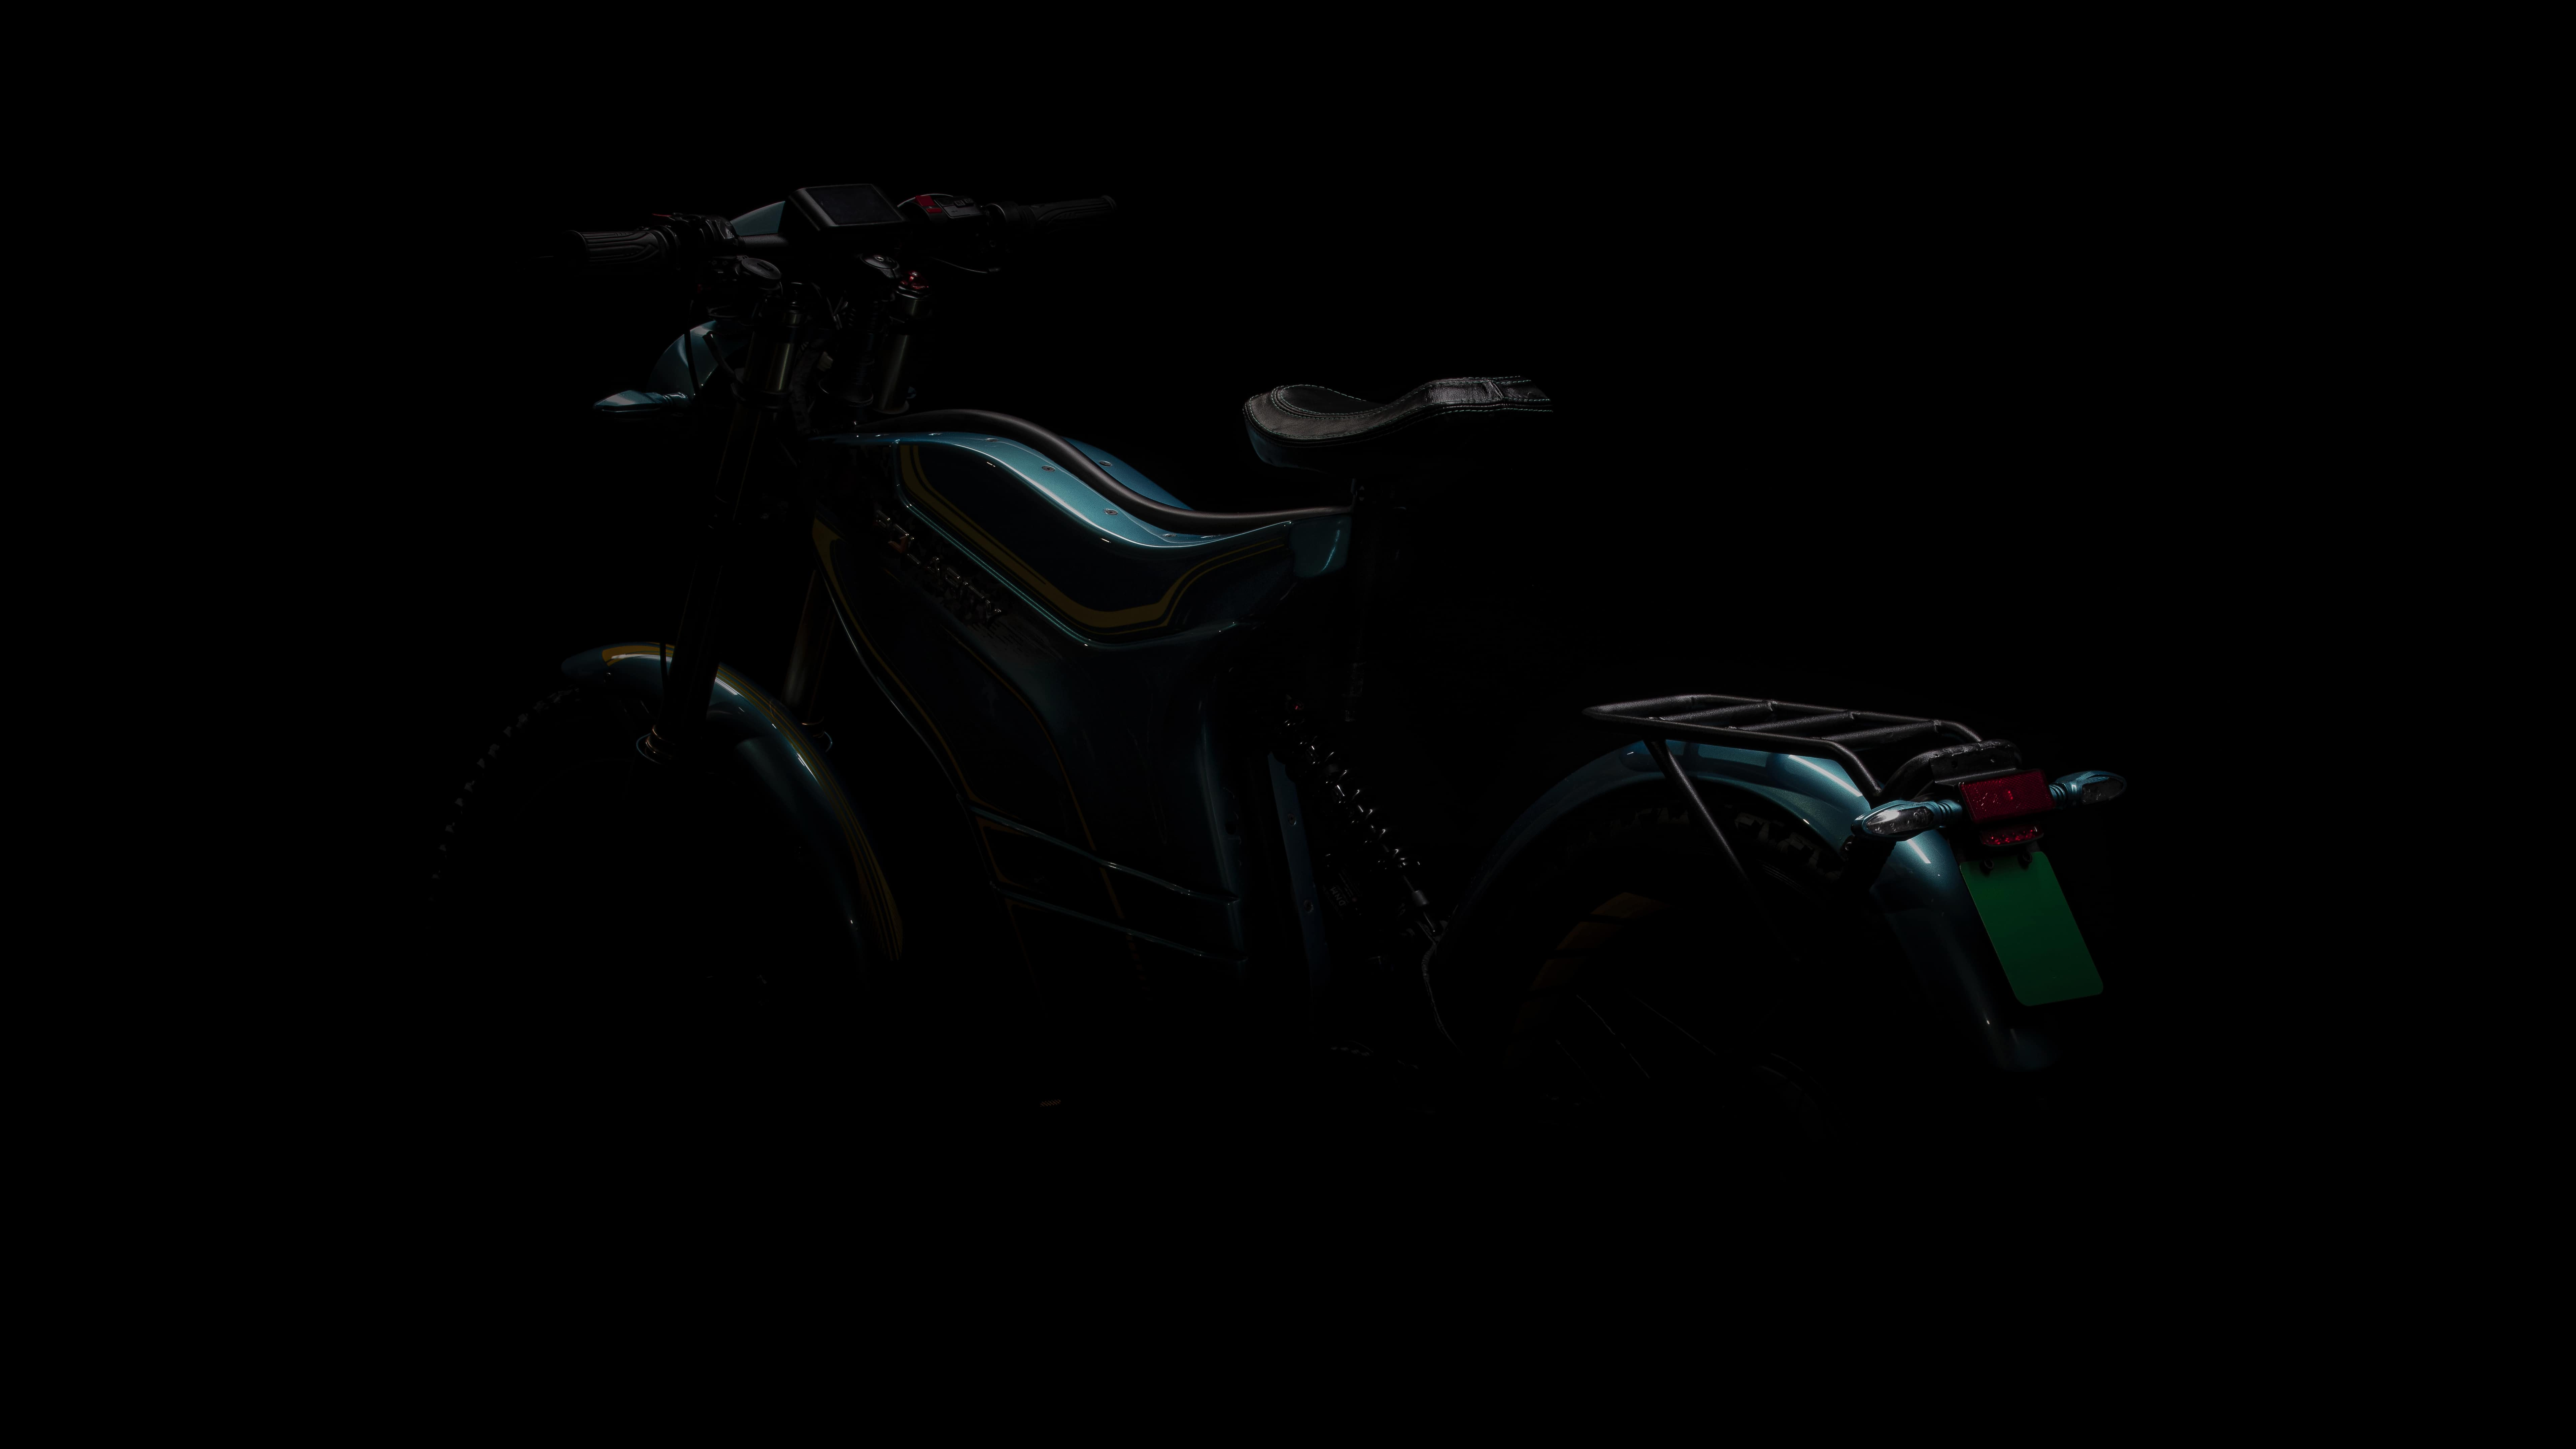 Polarity unveils six teaser images of Smart Bikes